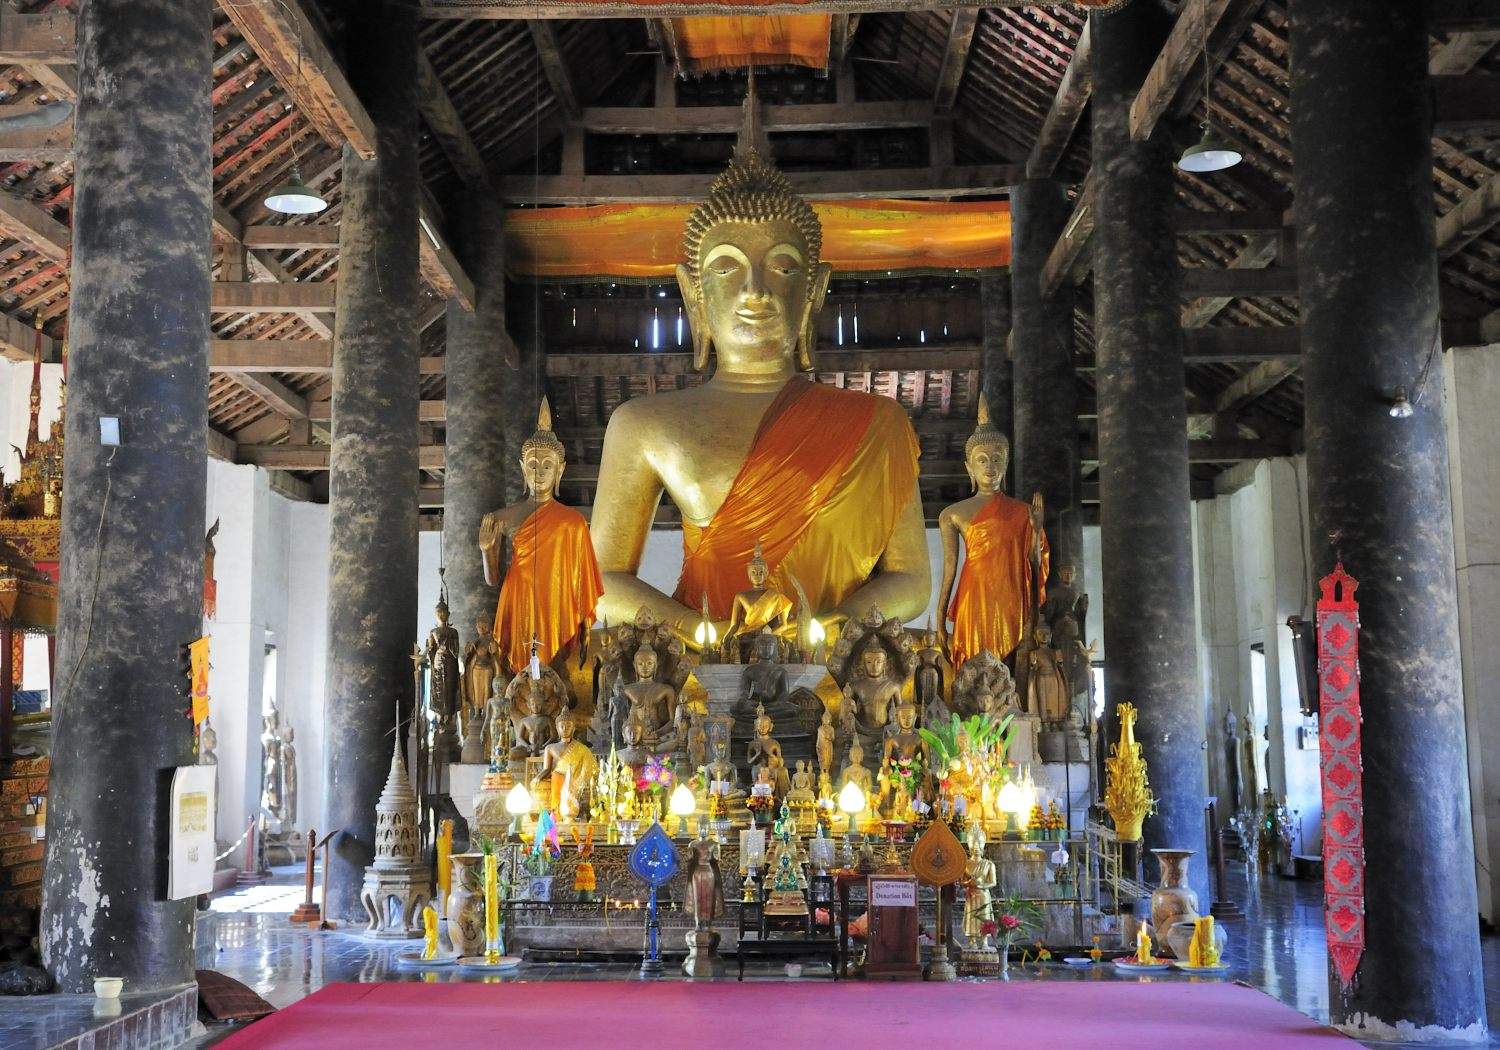 A enormous Buddha image inside the temple